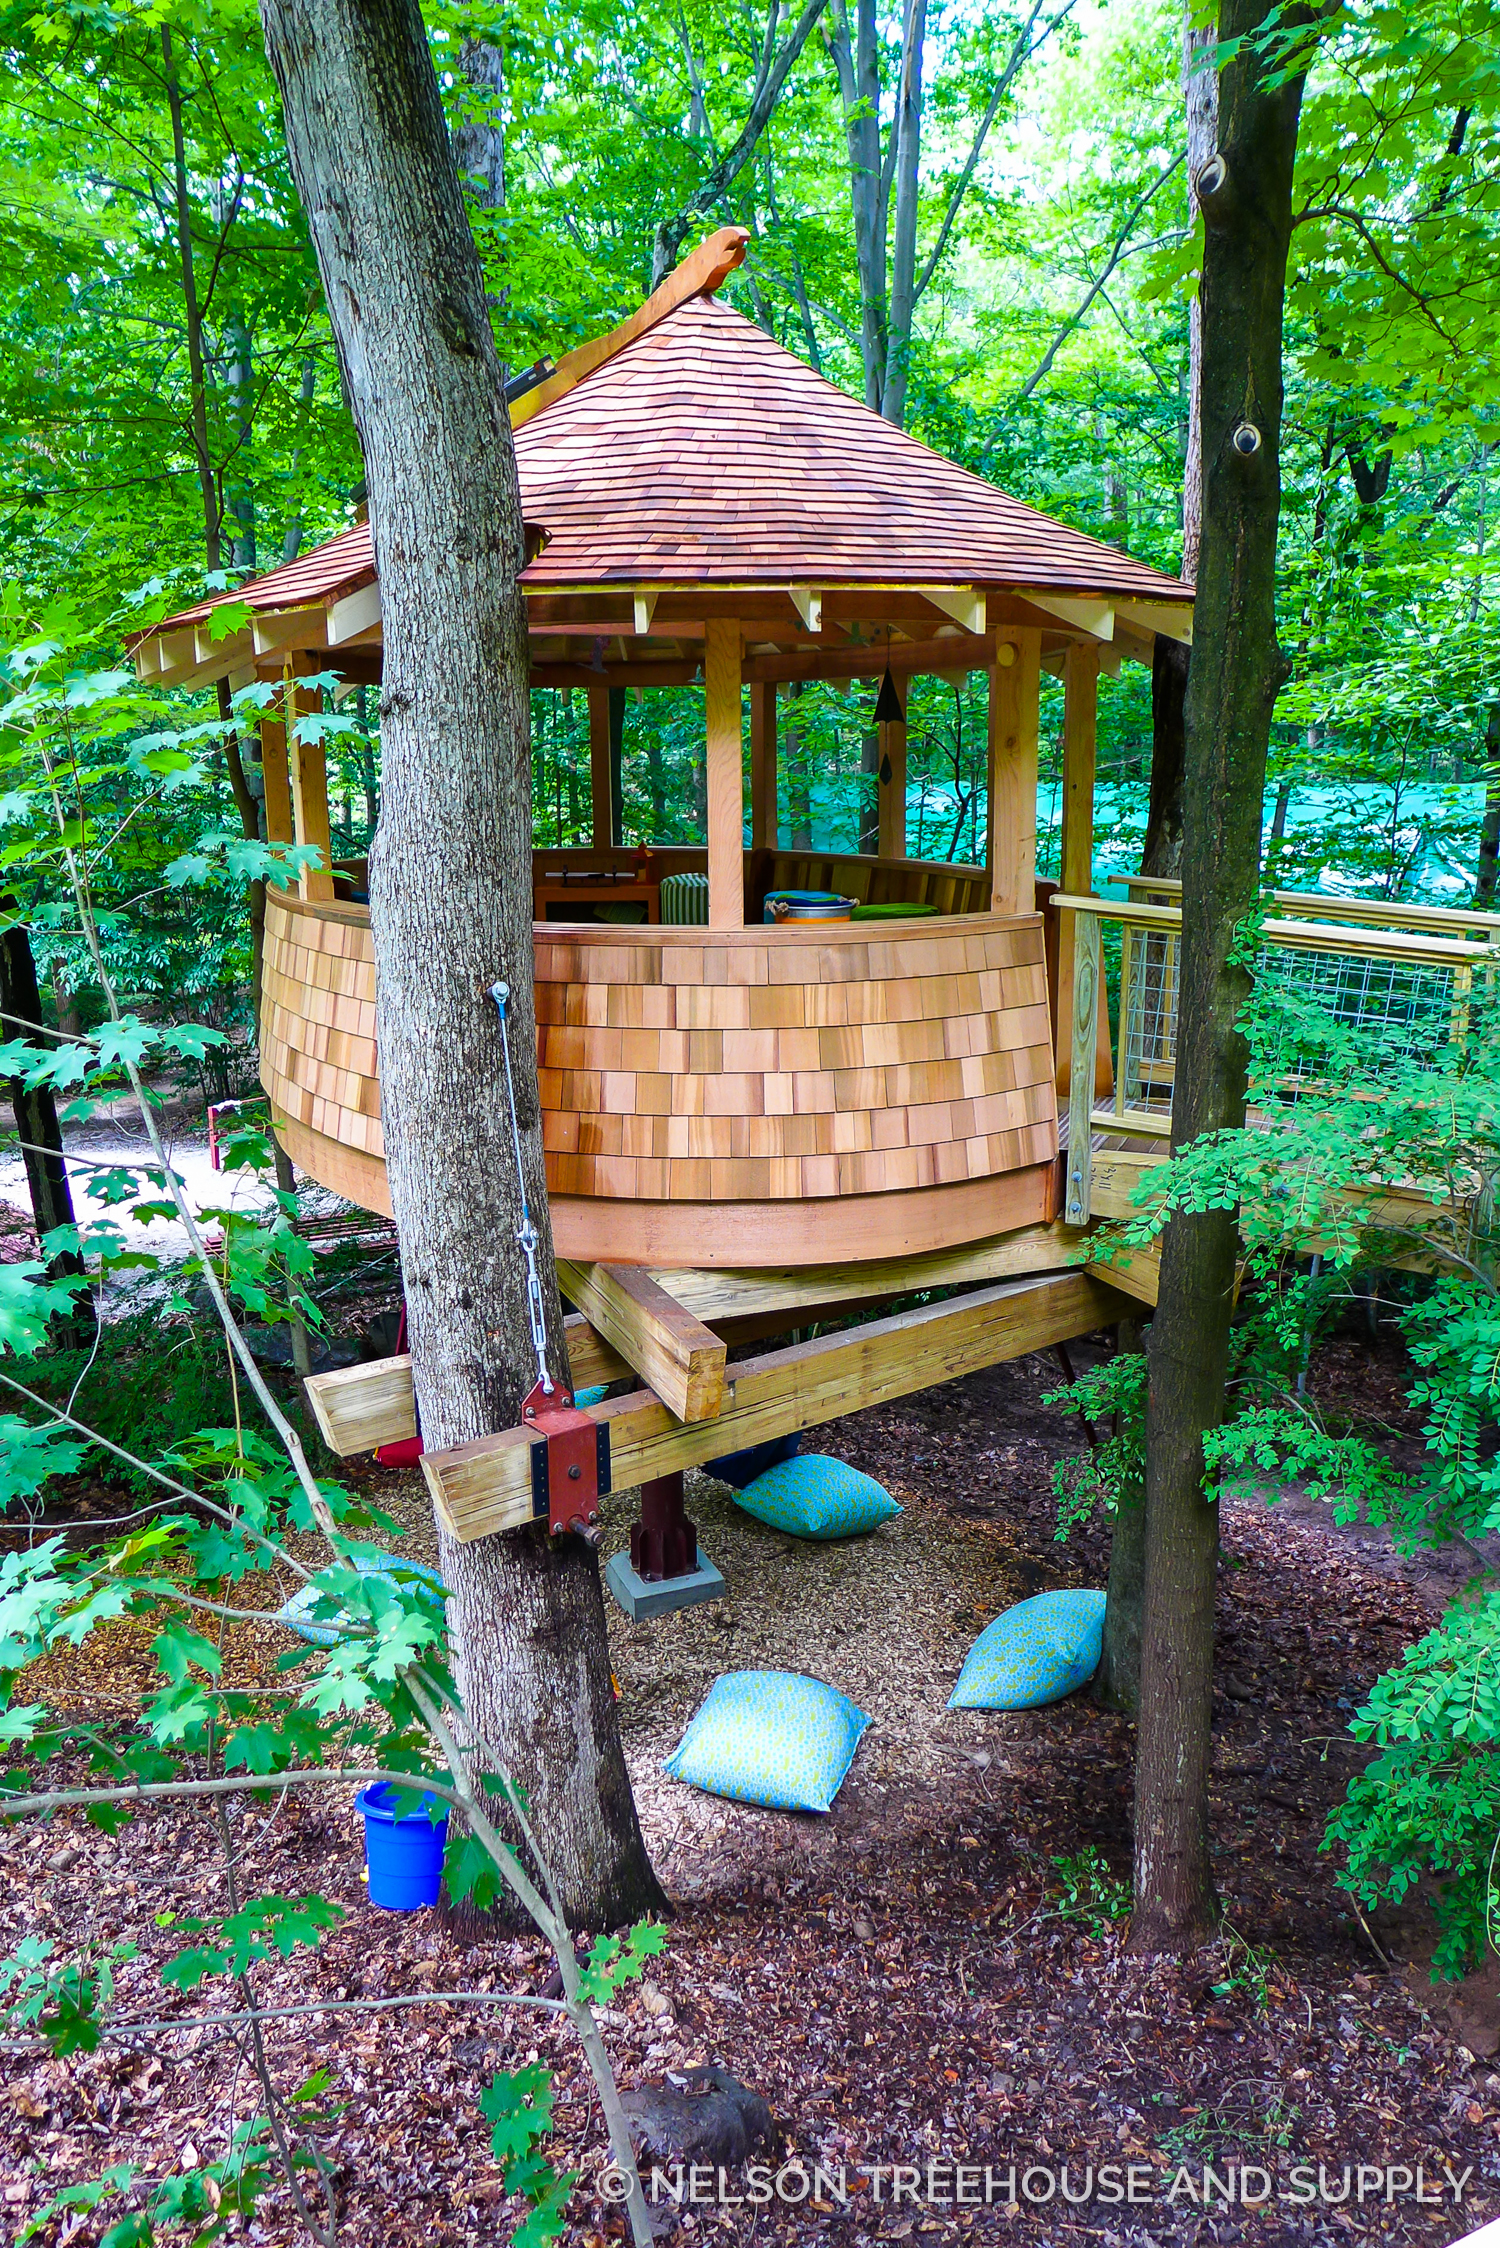 Camp - Nelson Treehouse